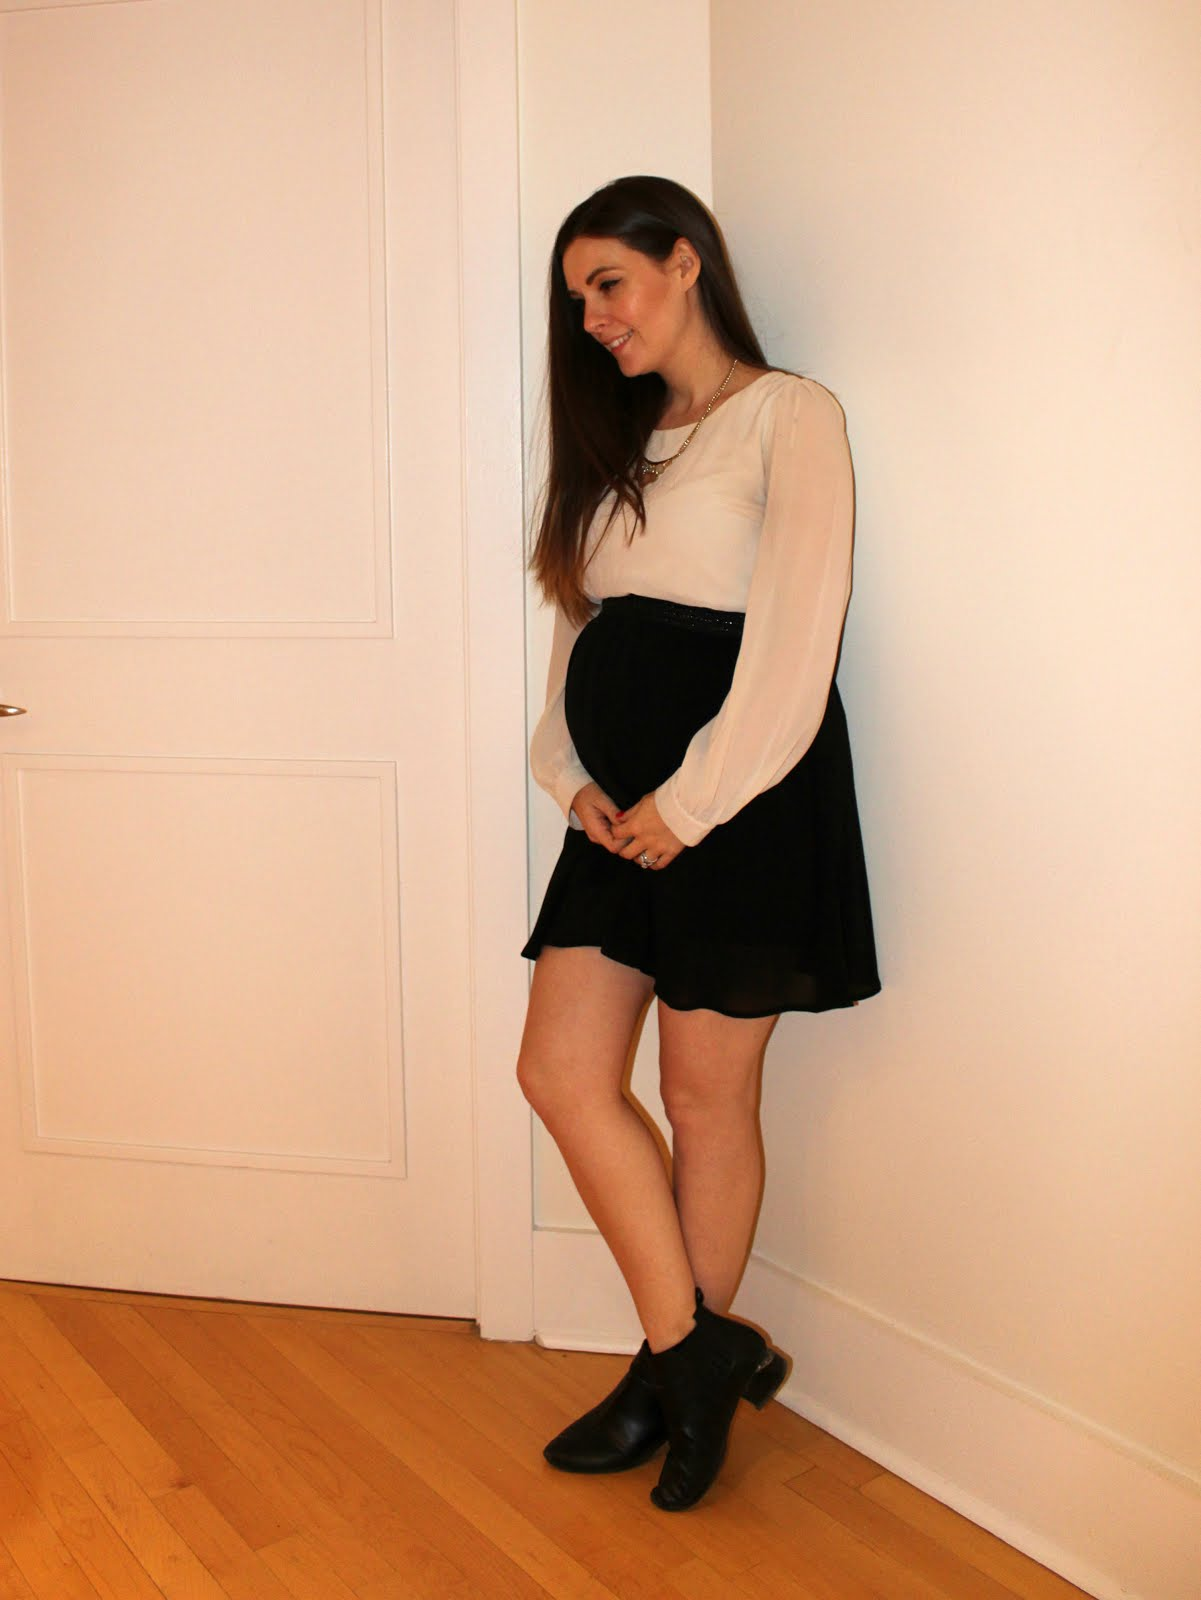 Black and White H&M Chiffon Dress, Maternity, Business Casual